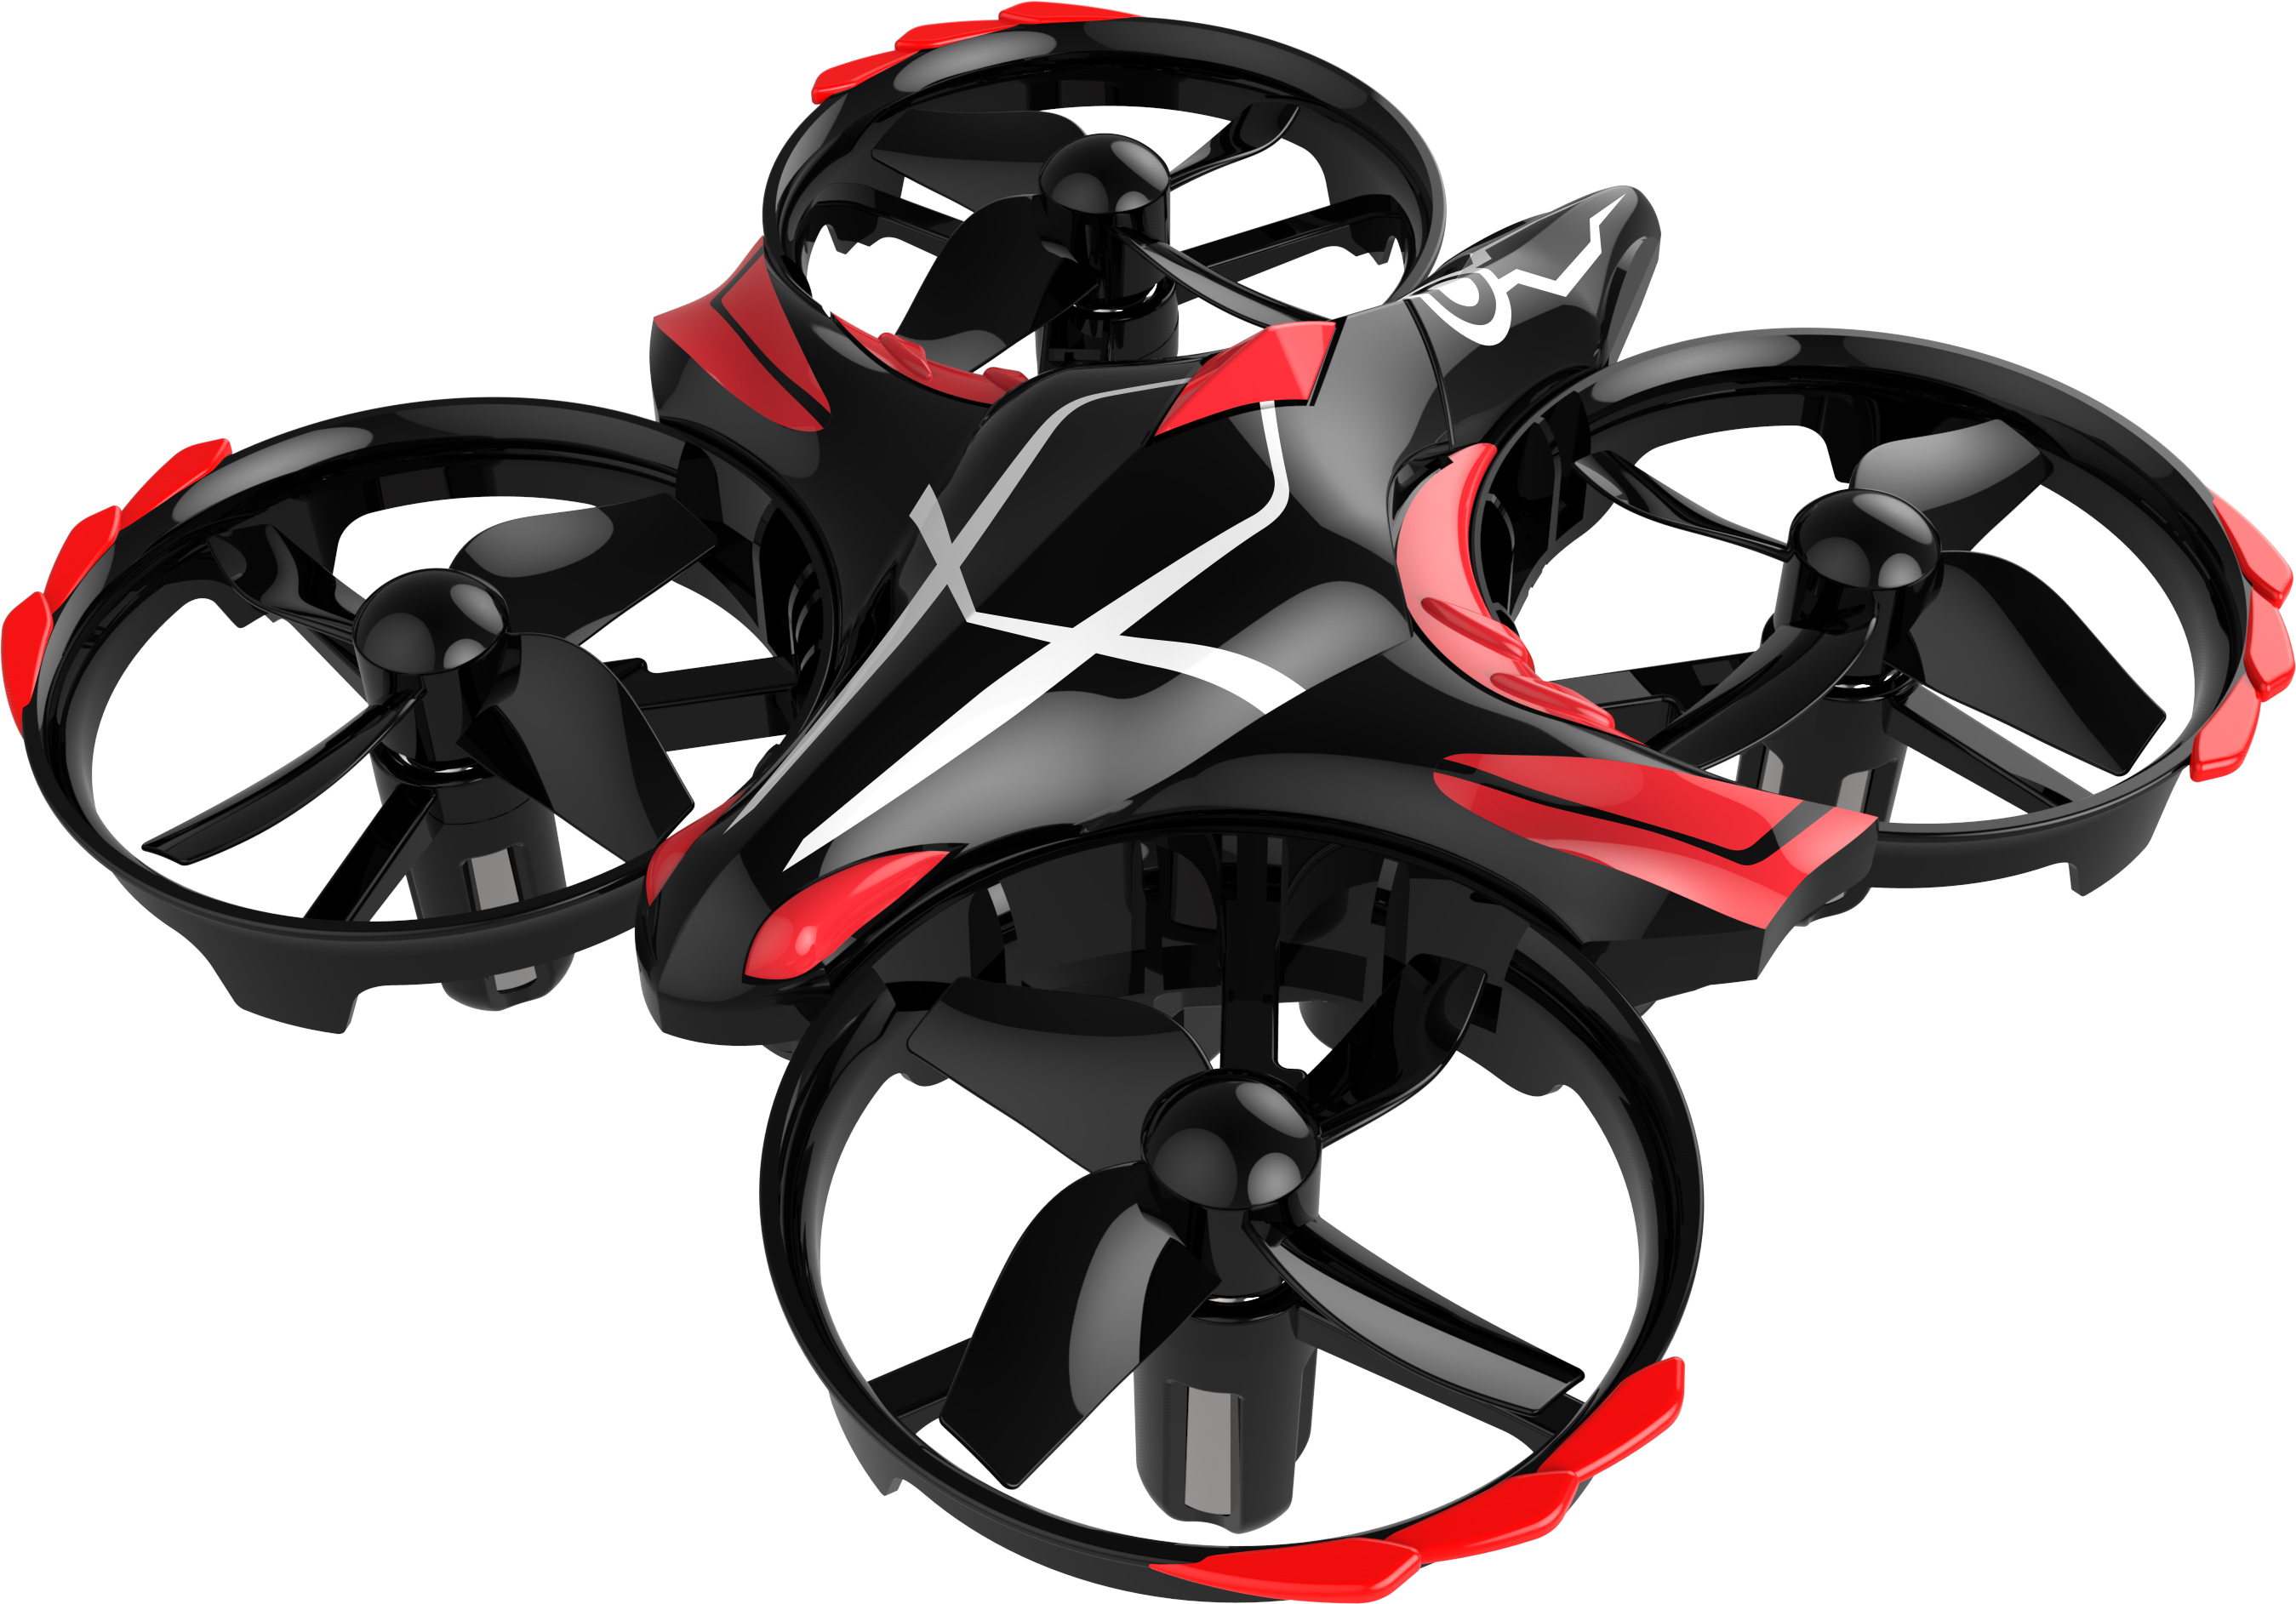 RH81 2.4G Gesture Remote Control Drone Infrared Sensor Induction Quadcopter Fixed Four-axis Interactive Gesture Sensing Plane black